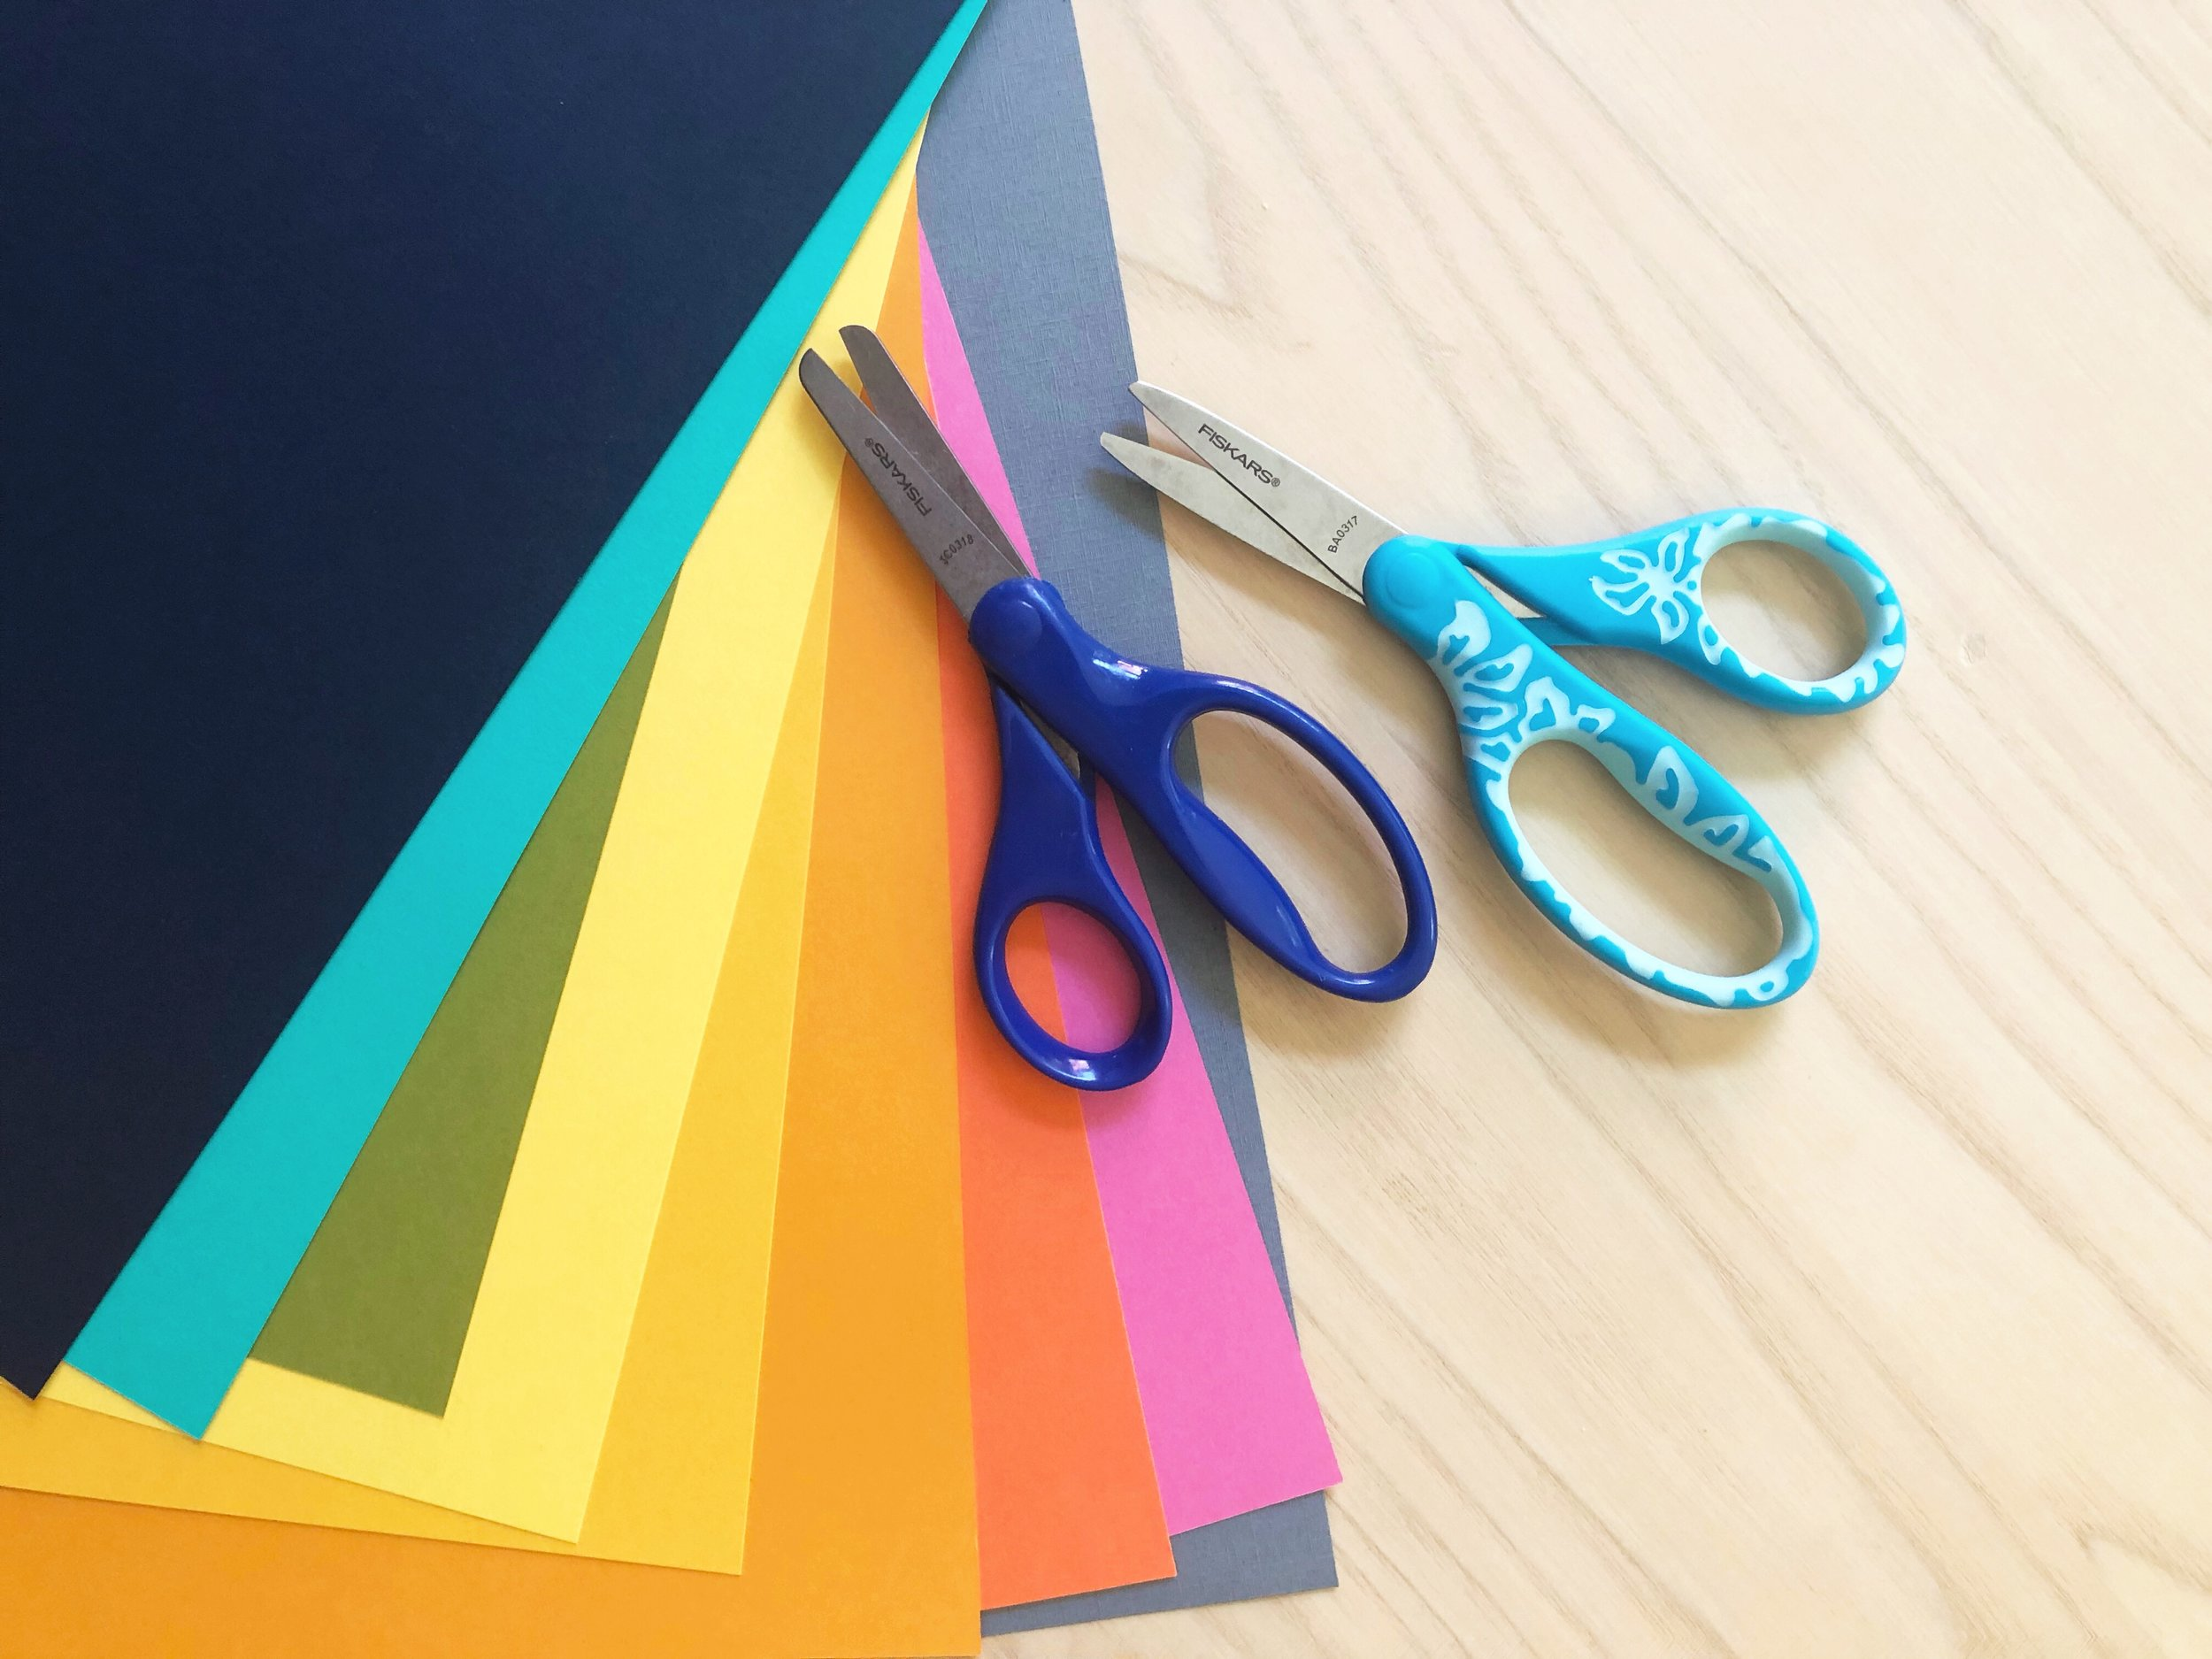 DIY Back to School Notebook Covers - Create easy DIY back to school paper collage notebook covers! And learn about cutting tips and tricks as well as safety tips for kids with scissors!  #Fiskarspartner #backtoschooldiy #schoolsupplies #fiskars #schooldiy #craftsforkids #easycraftsforkids #popart #papercollage #teacherrecommended #gayuncles #craftylumberjacks